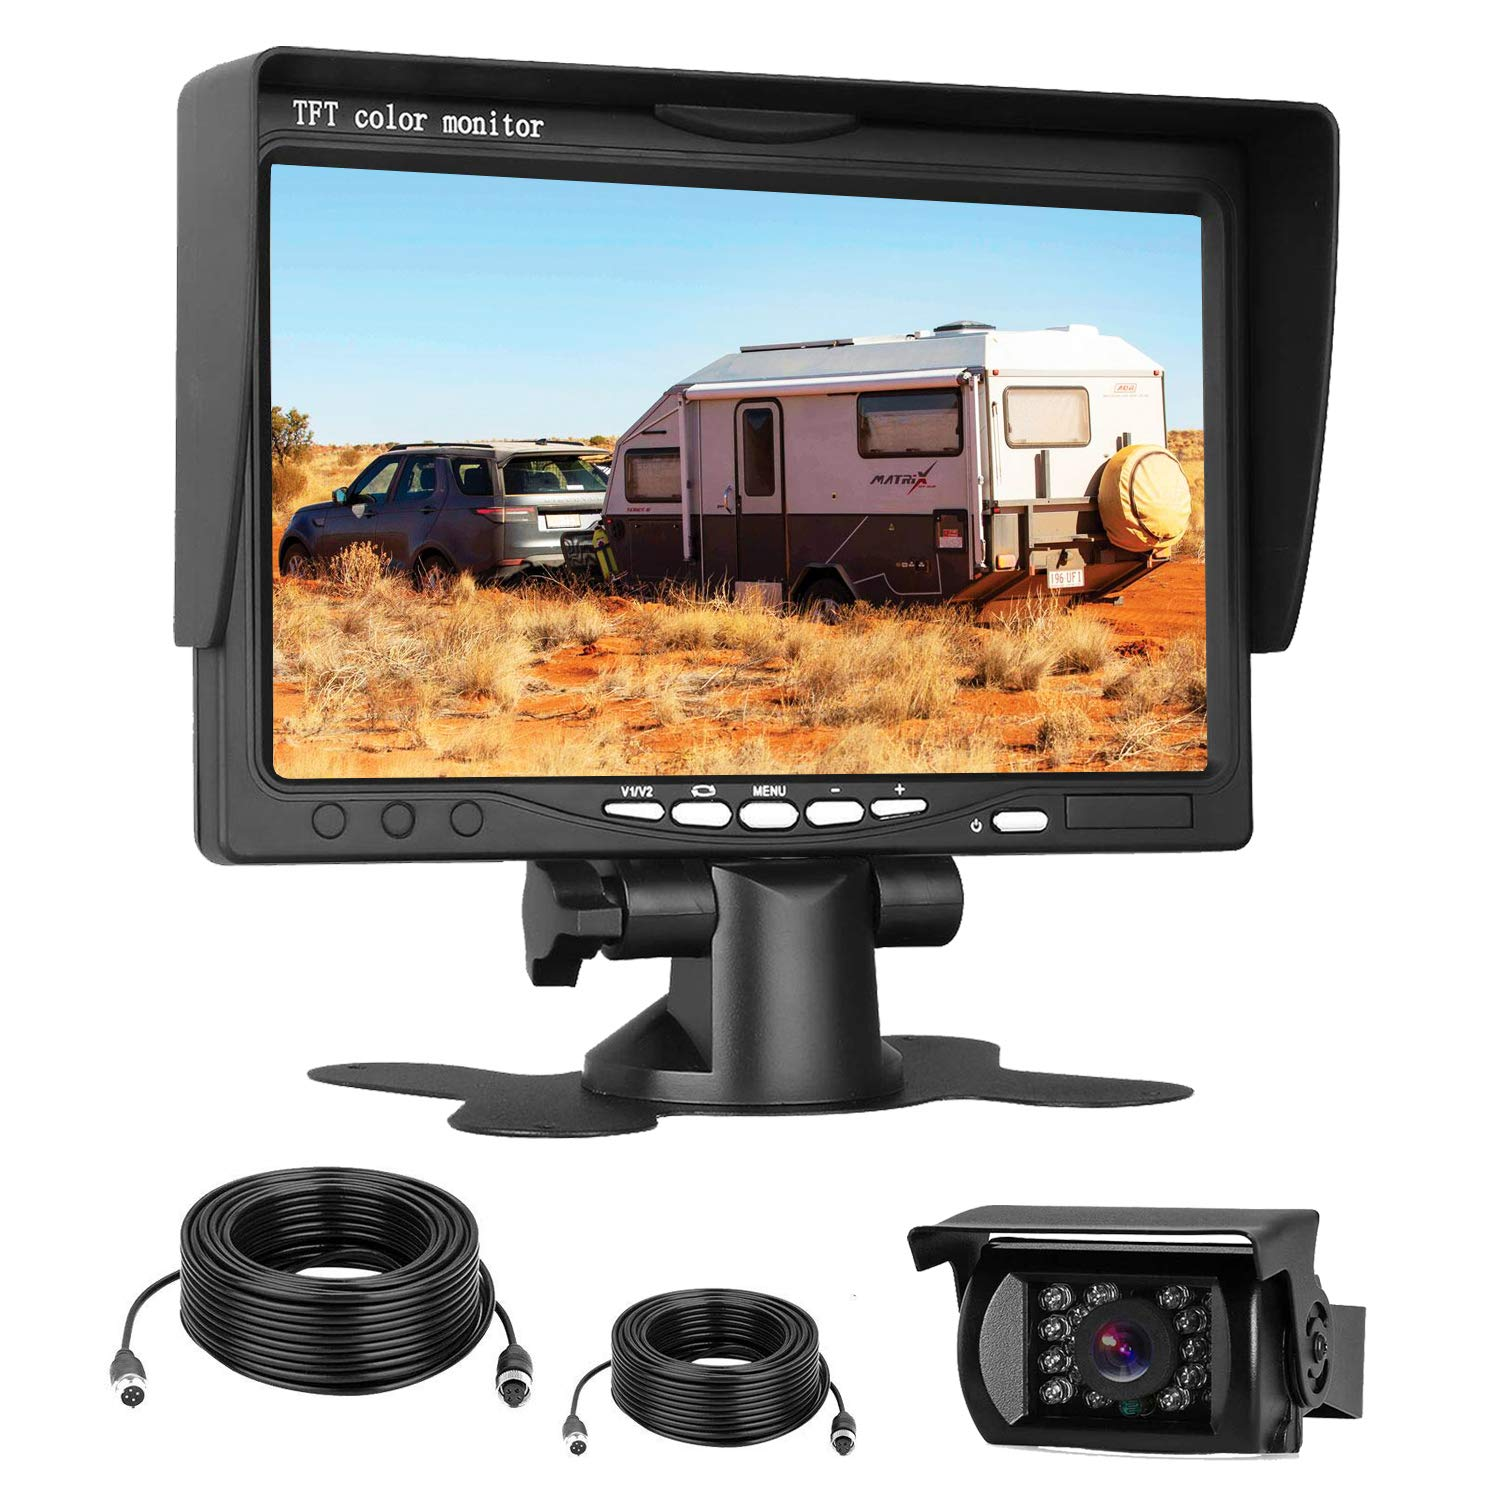 Emmako HD 720P Backup Camera and 7'' Monitor Kit for Trucks,Trailers,RVs,High-Speed Rear Observation System Adjustable Rear/Front View, Guide Lines ON/Off, IP69K Waterproof